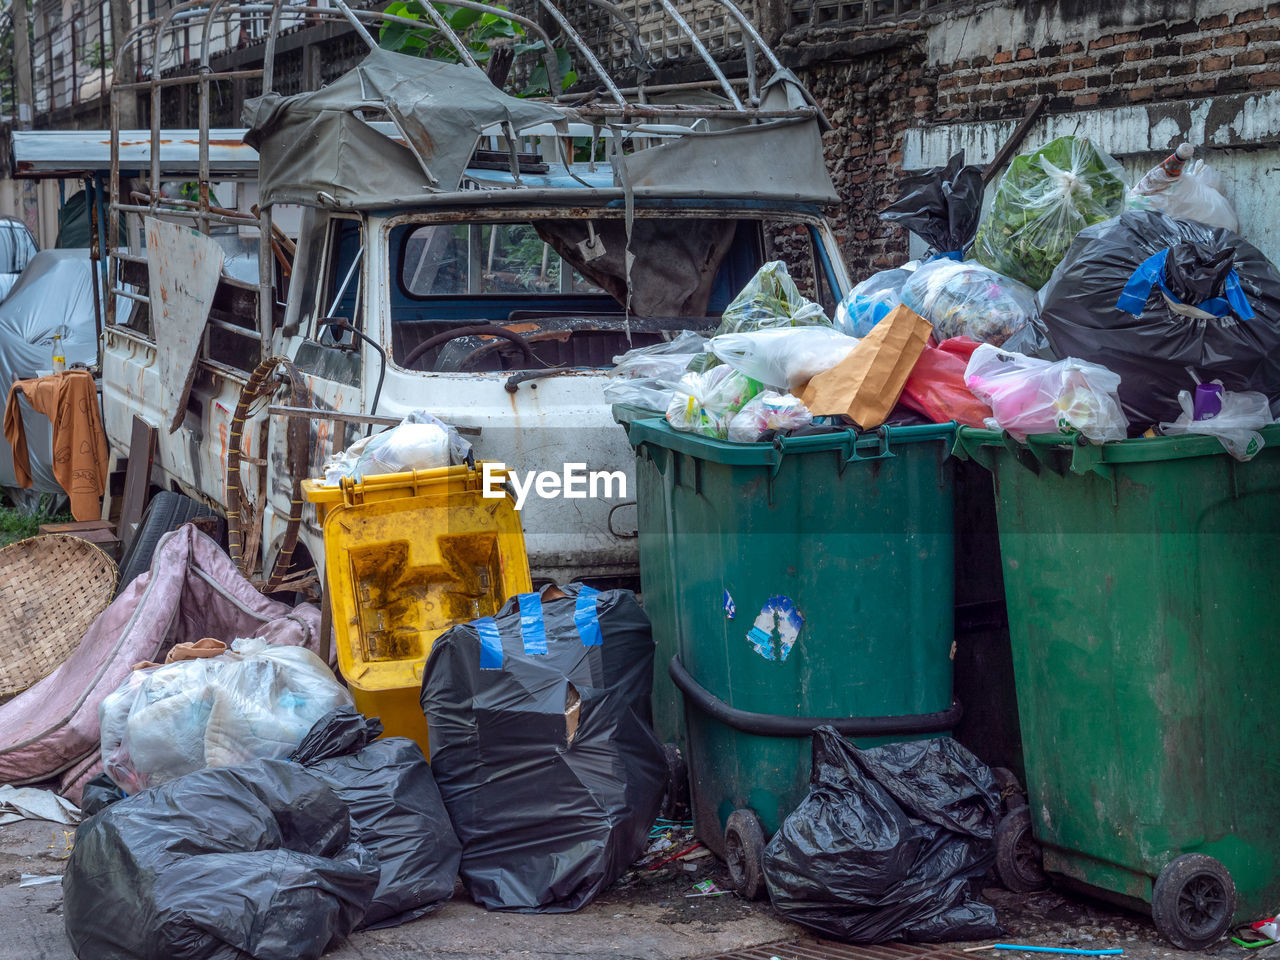 garbage, environmental issues, plastic, pollution, garbage bin, recycling, garbage dump, day, environment, unhygienic, container, large group of objects, dirty, messy, plastic bag, bag, garbage bag, dirt, architecture, nature, outdoors